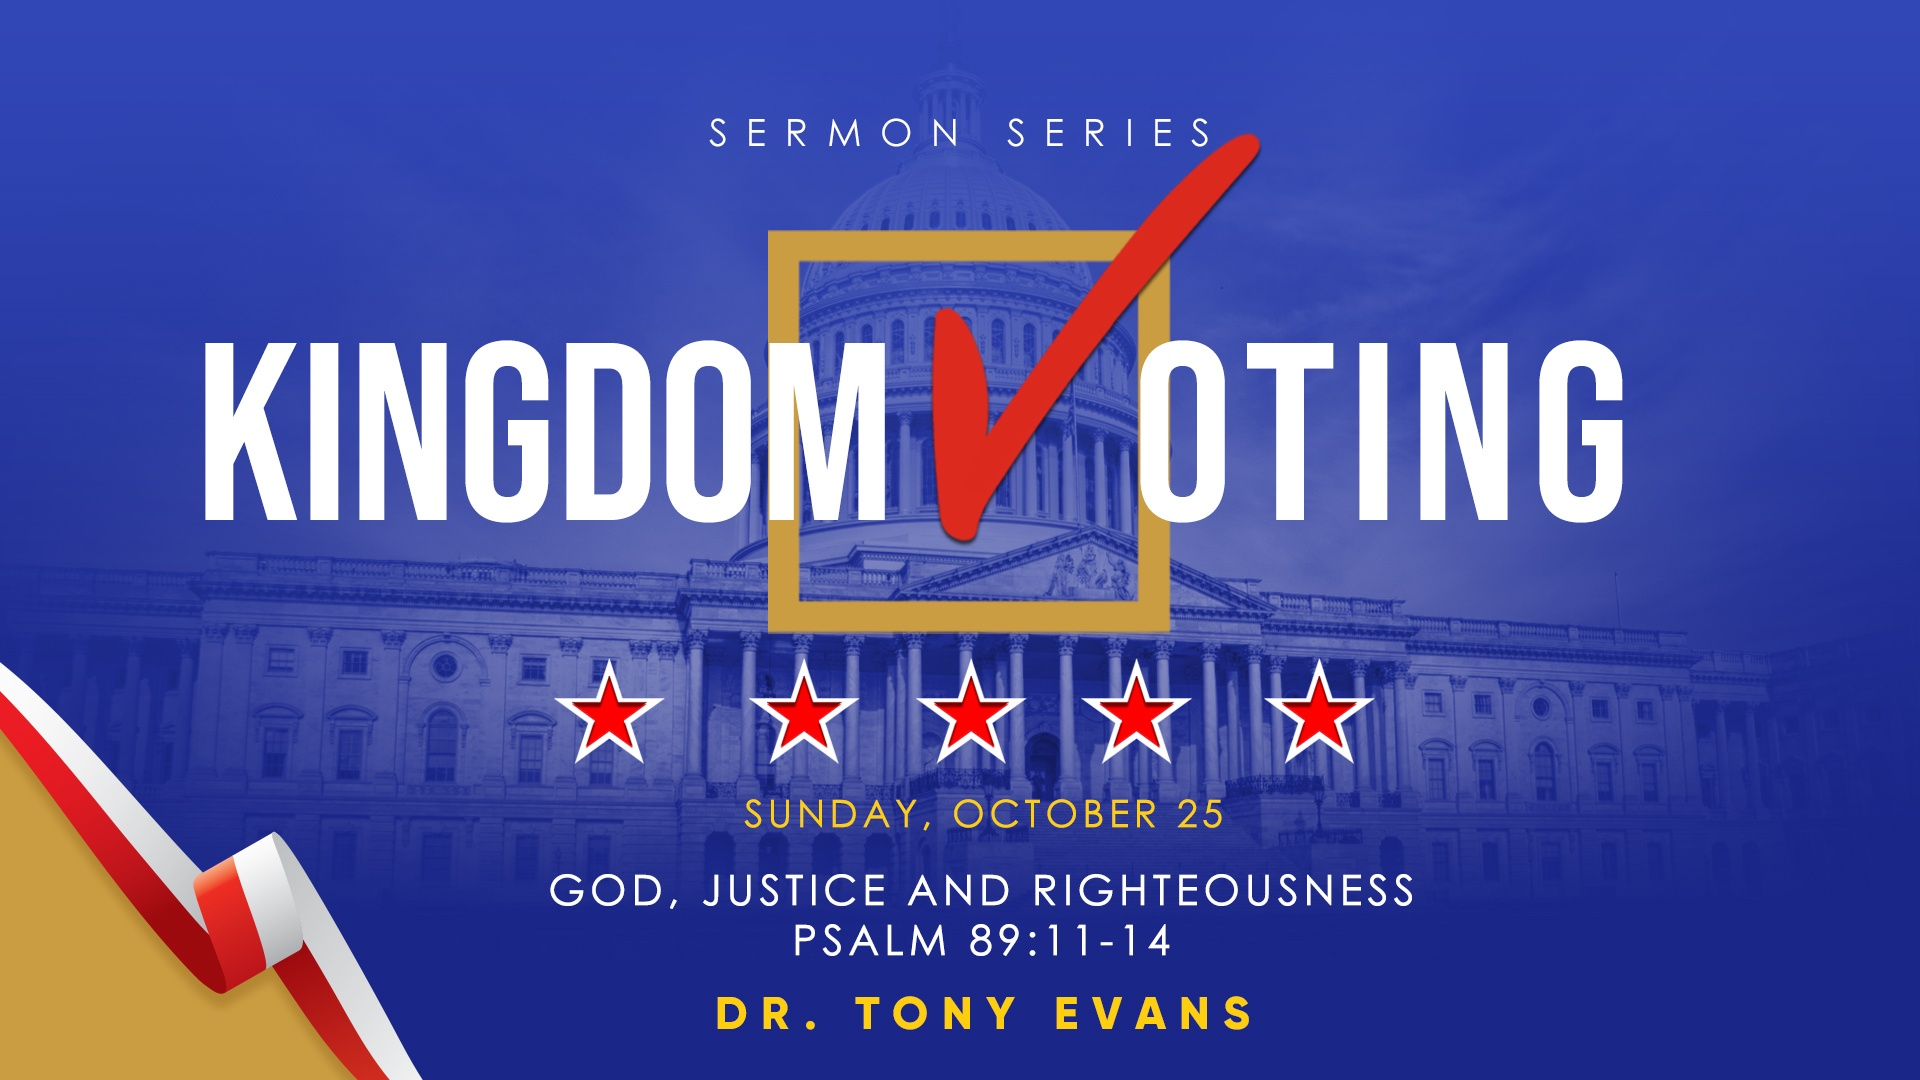 God and Justice and Righteousness by Dr. Tony Evans